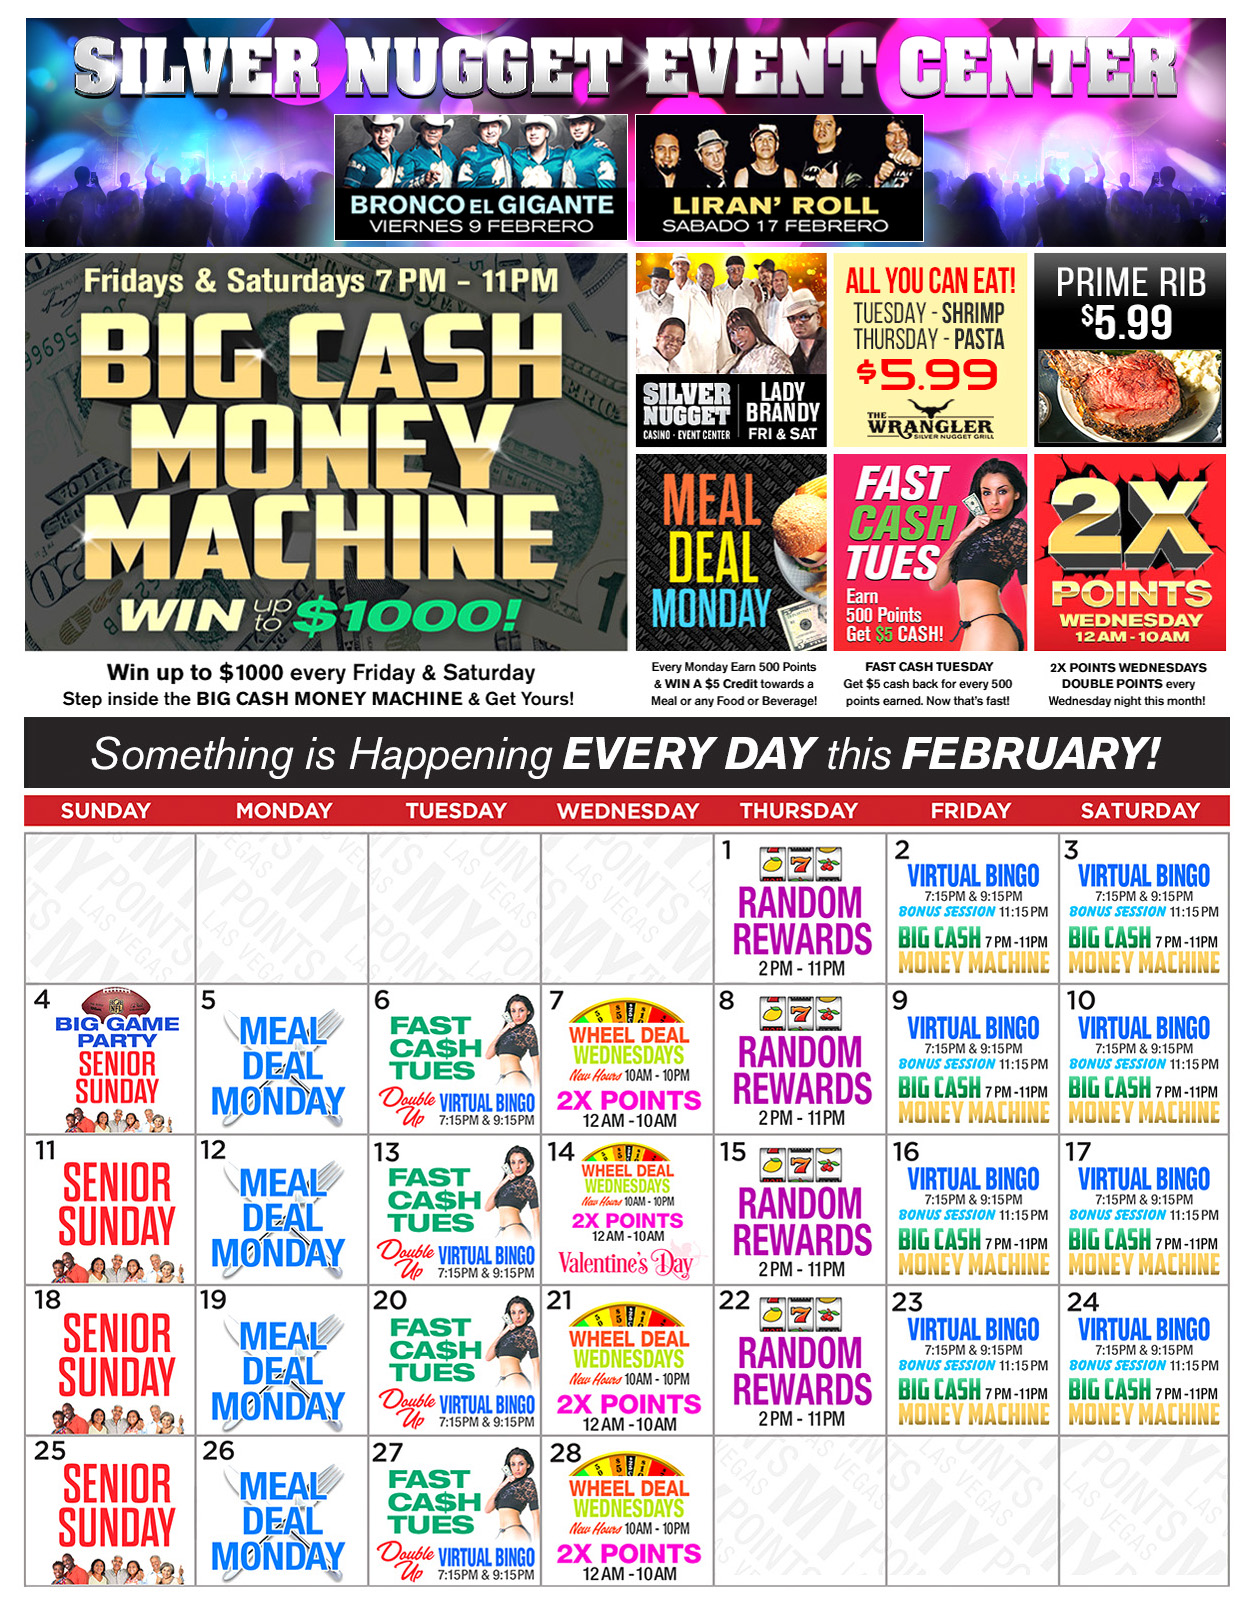 Silver Nugget Upcoming Promotions - February 2018